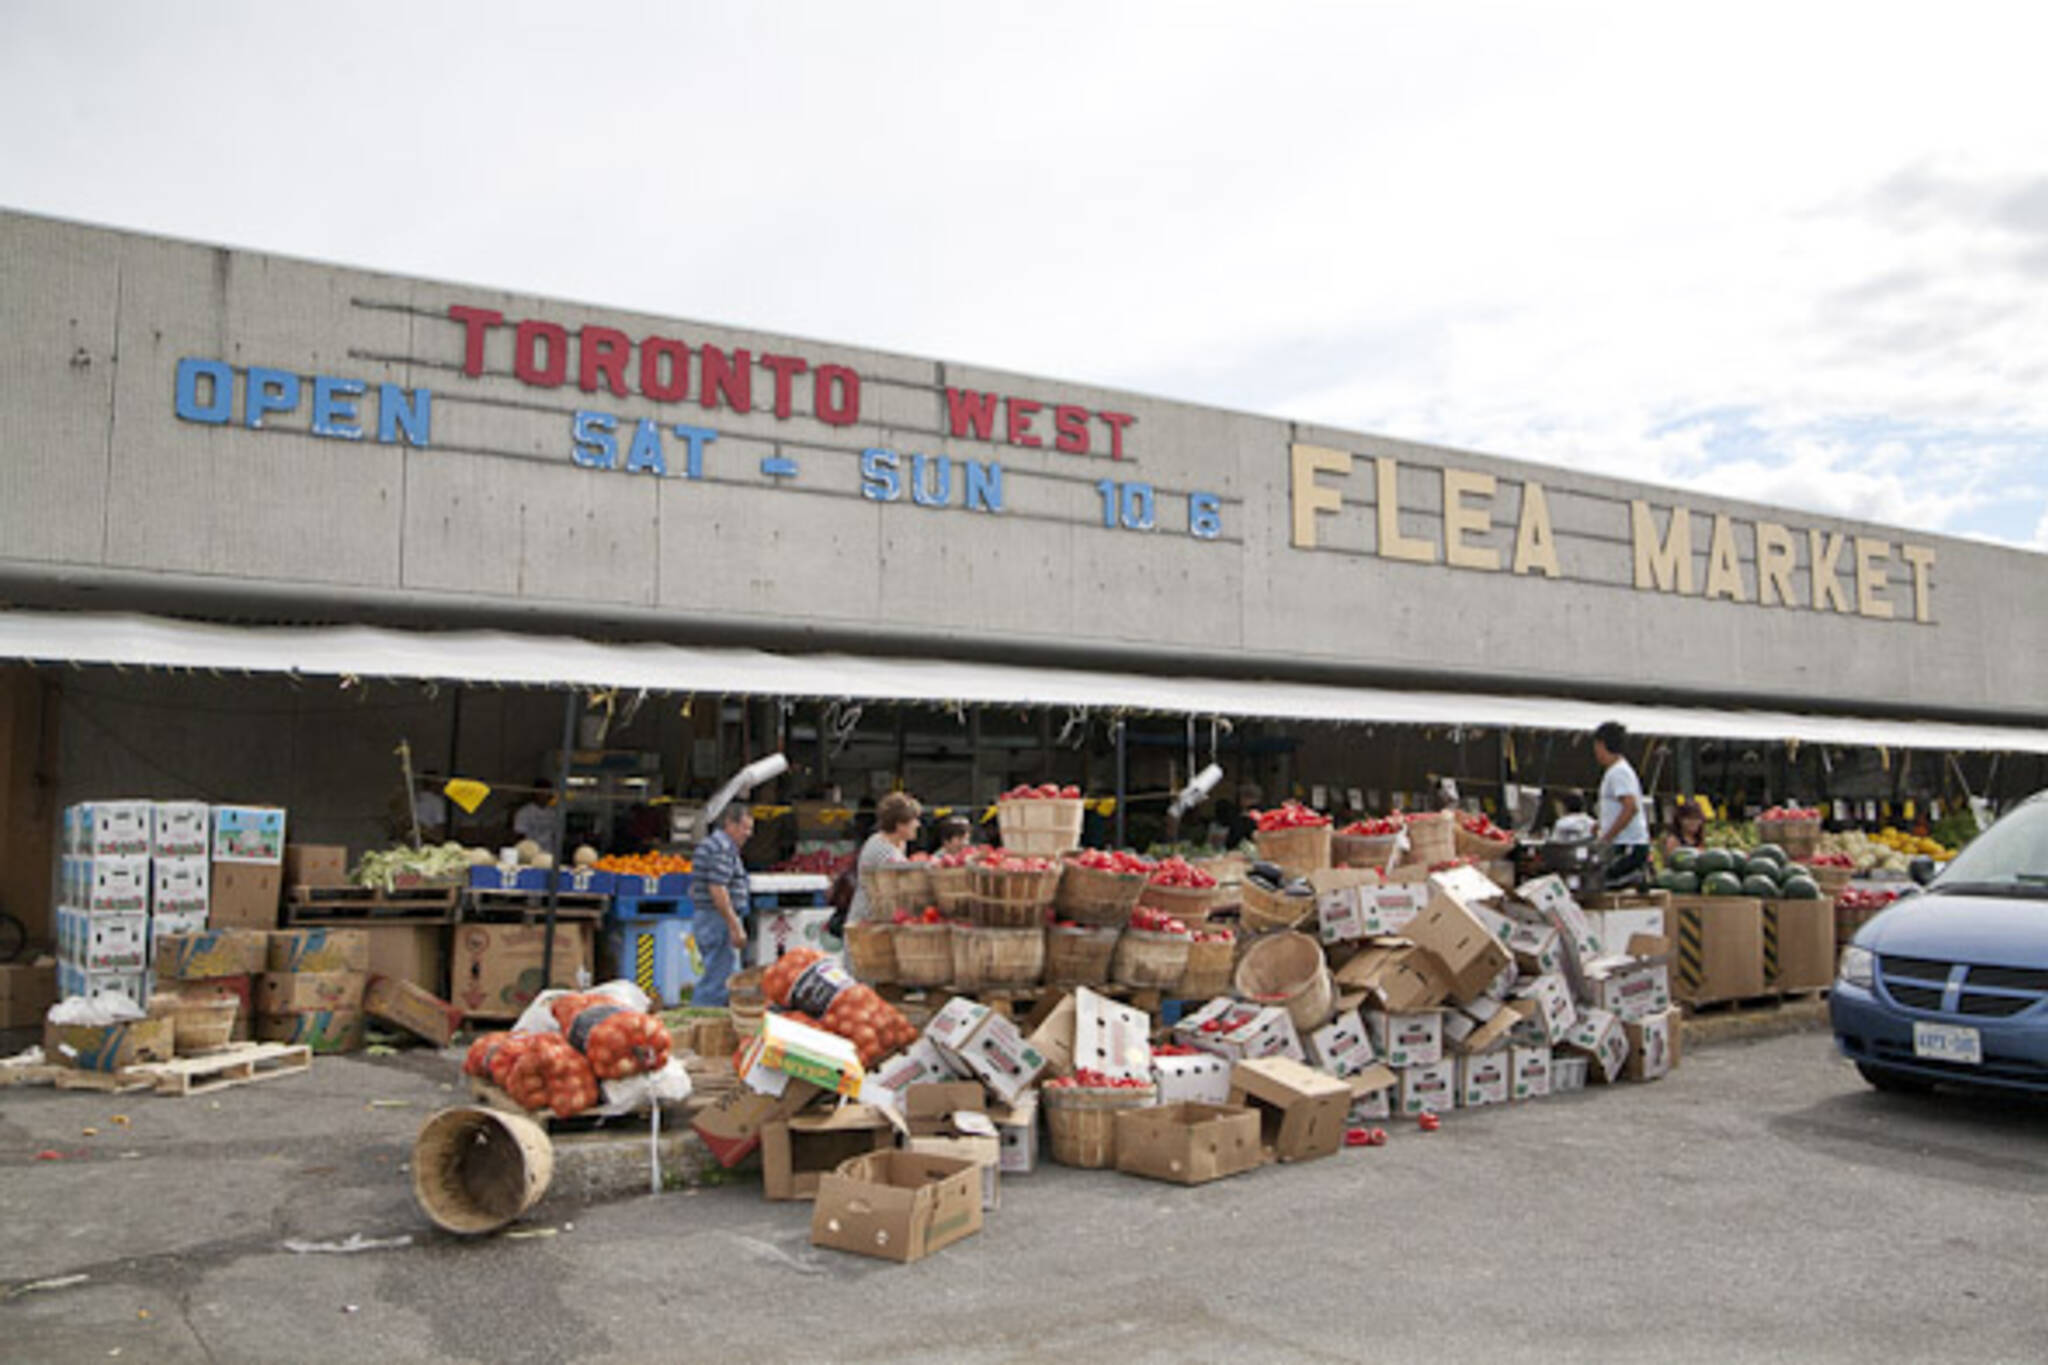 Toronto Weston Flea Market